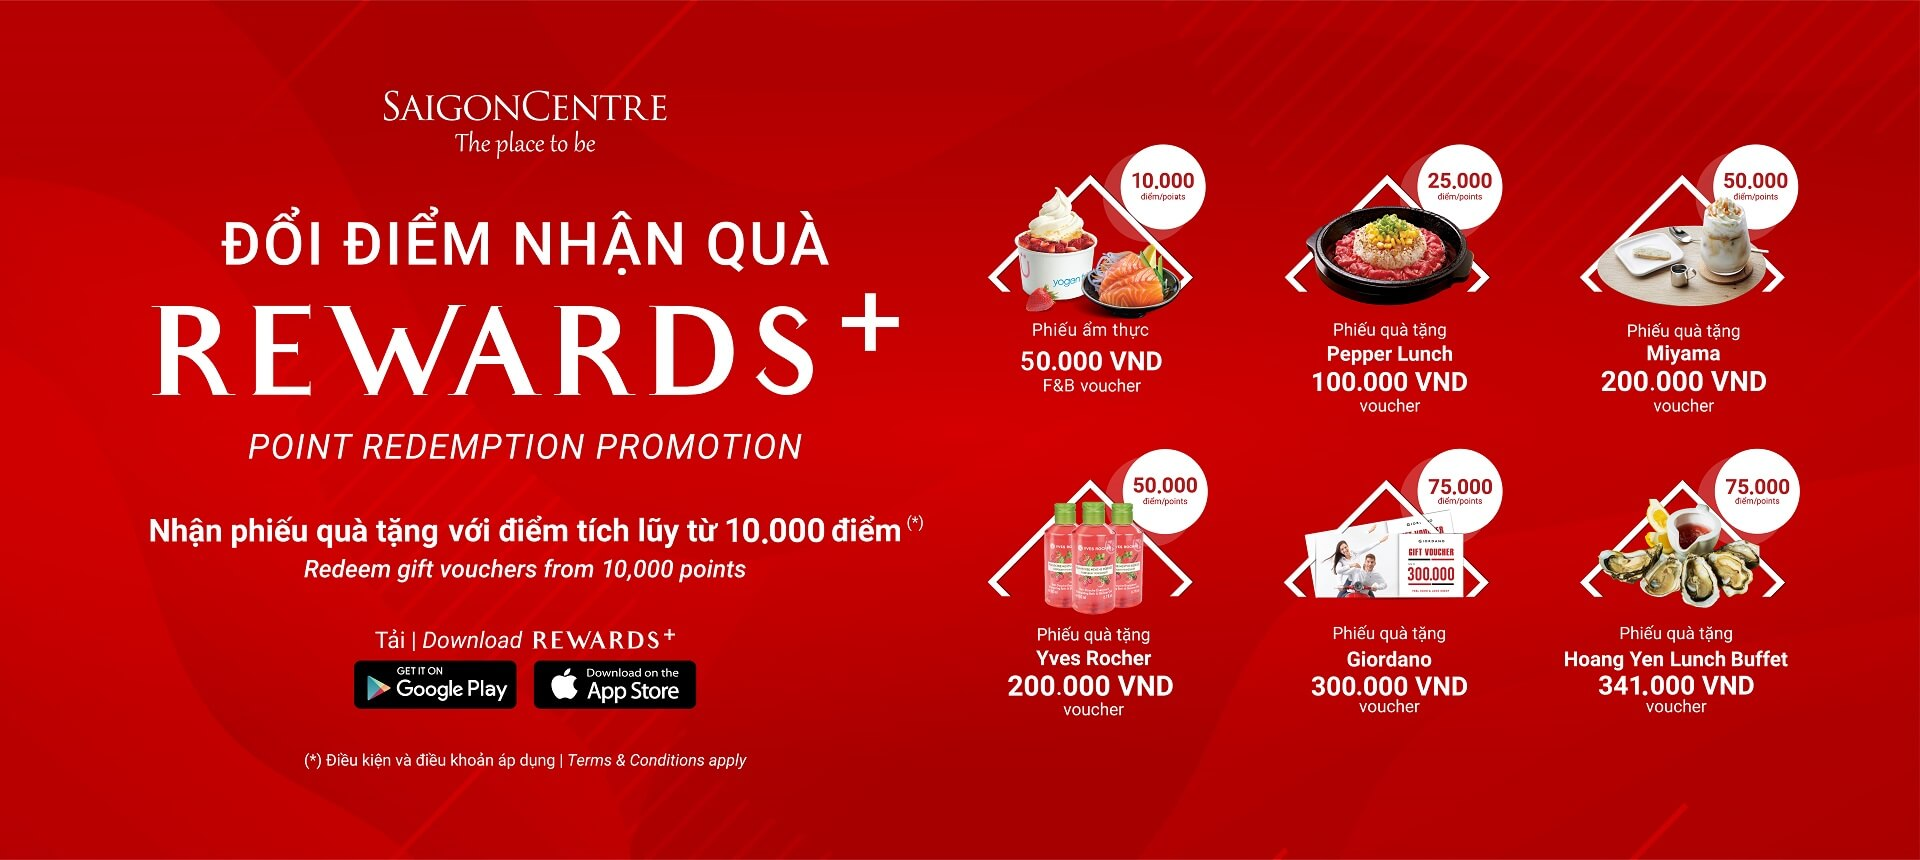 POINT REDEMPTION PROMOTION